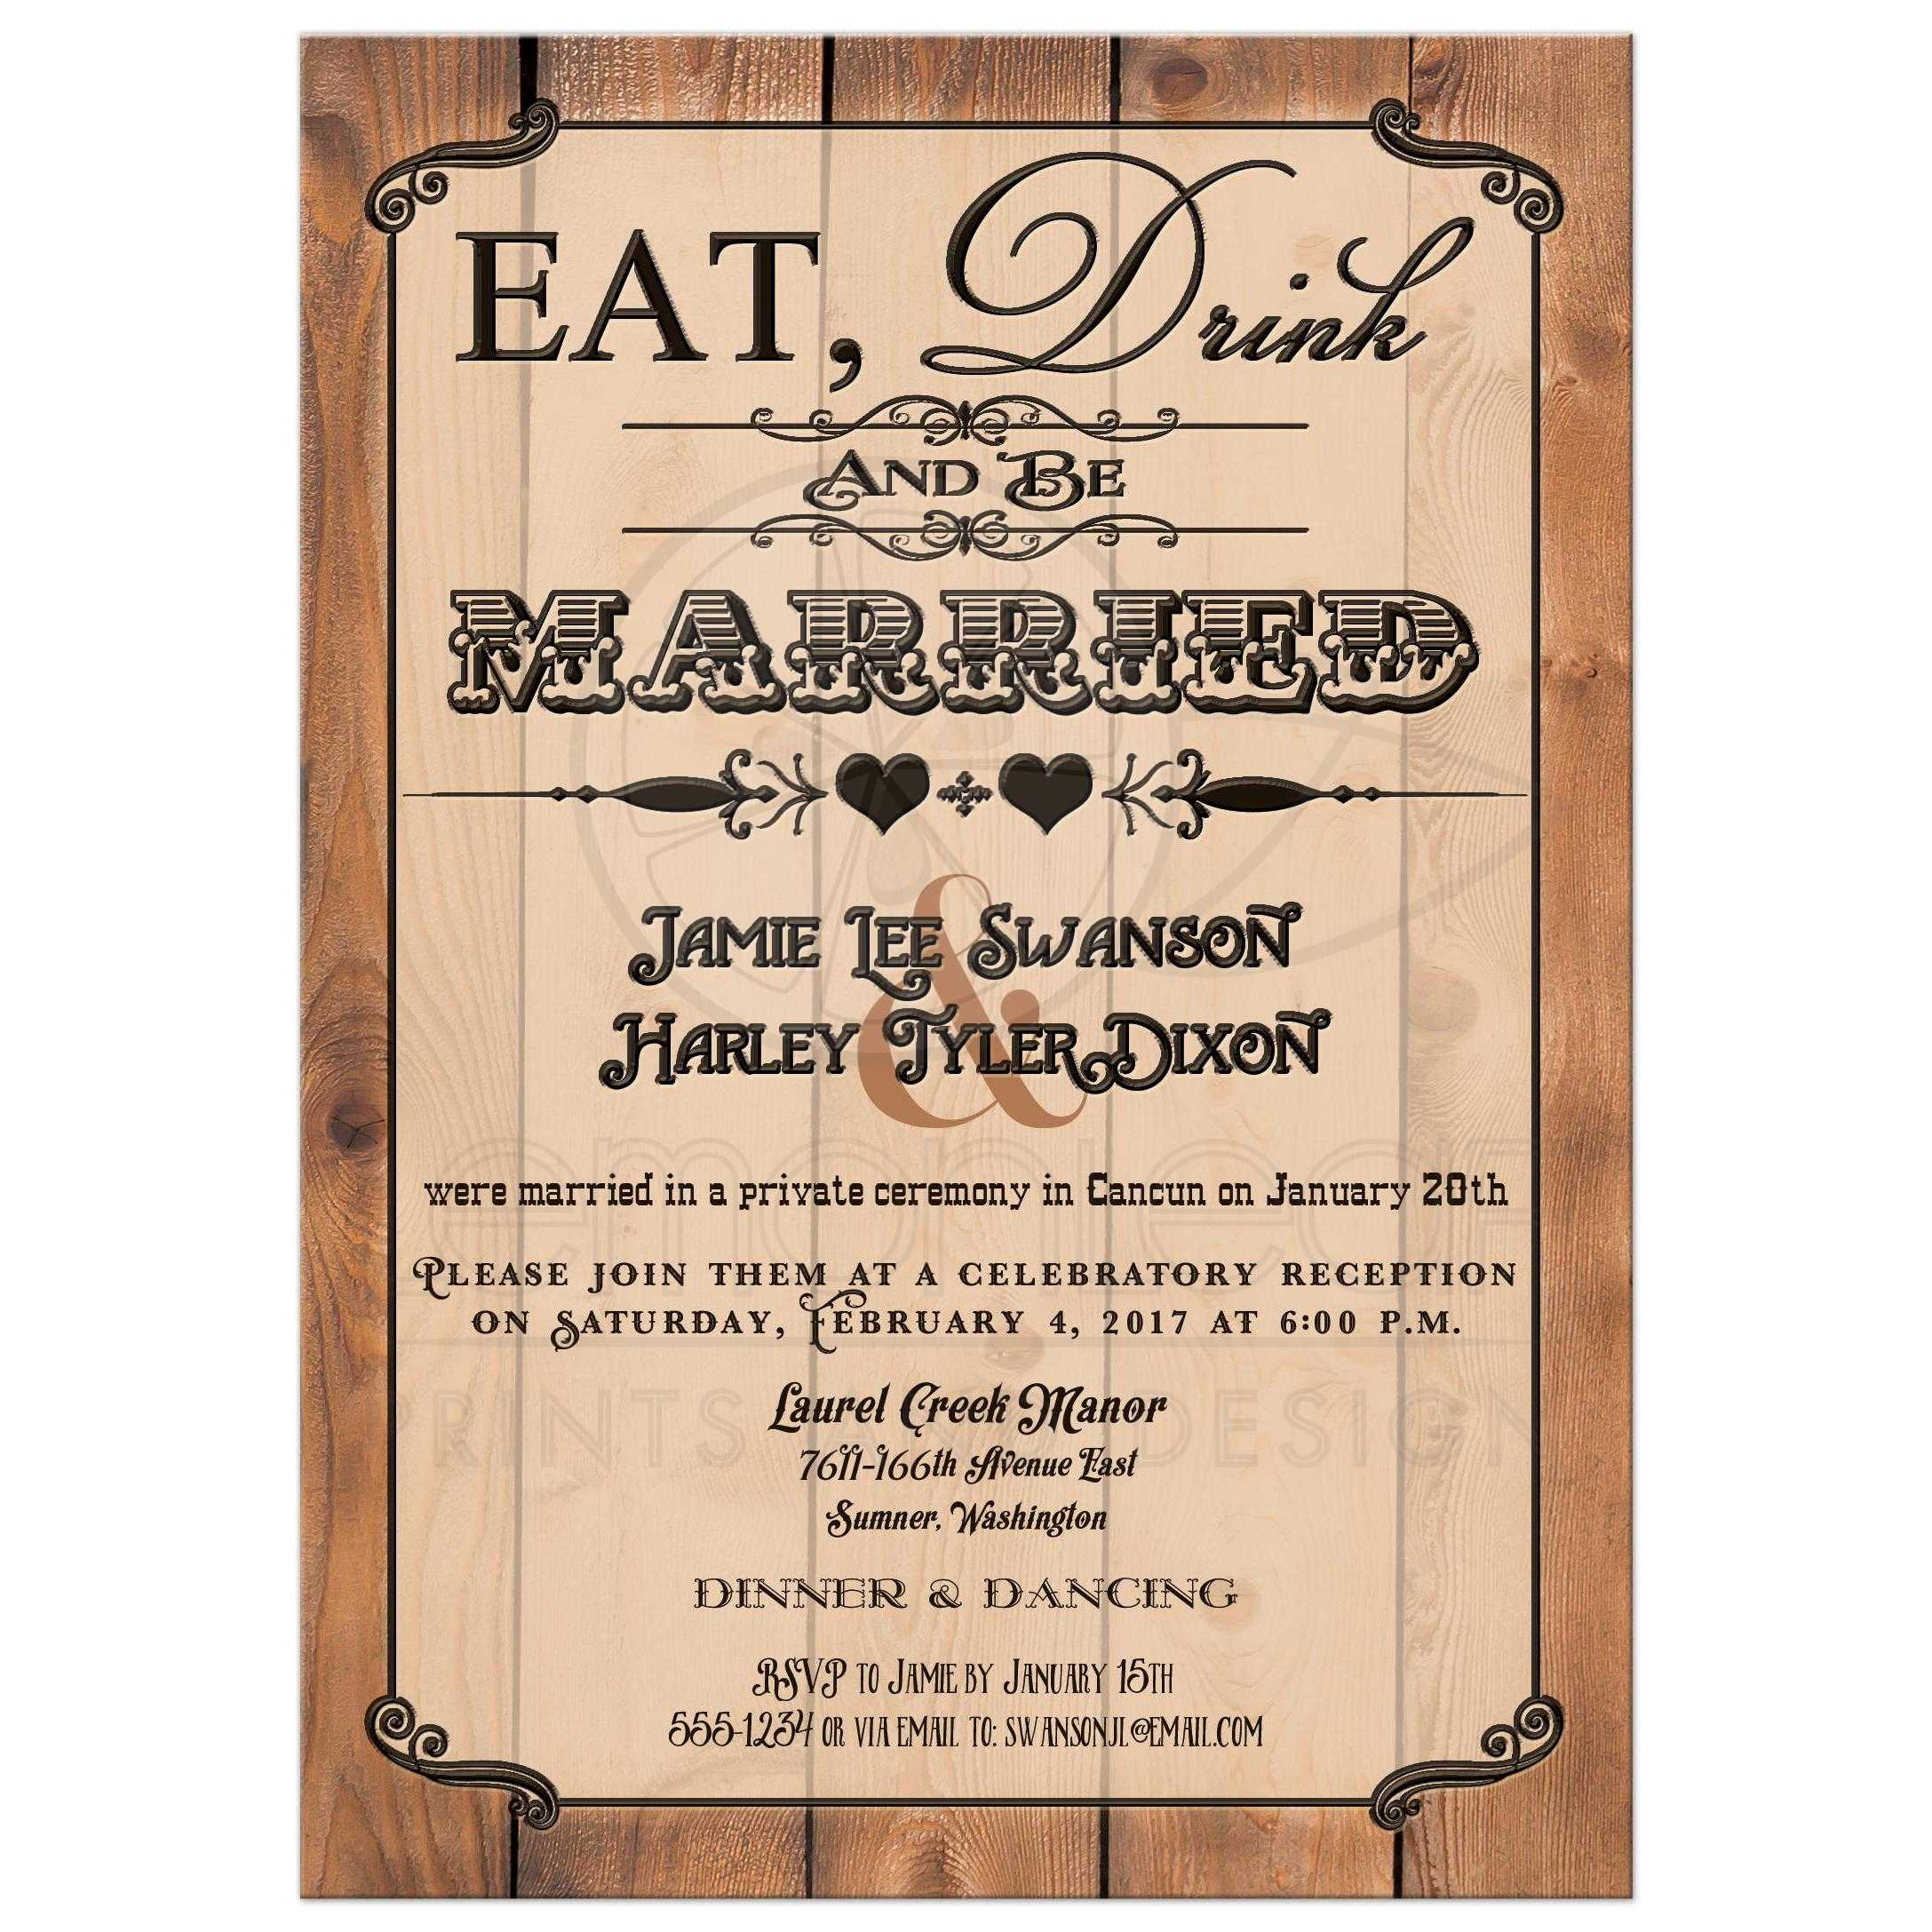 Post Wedding Party Invitations gangcraftnet